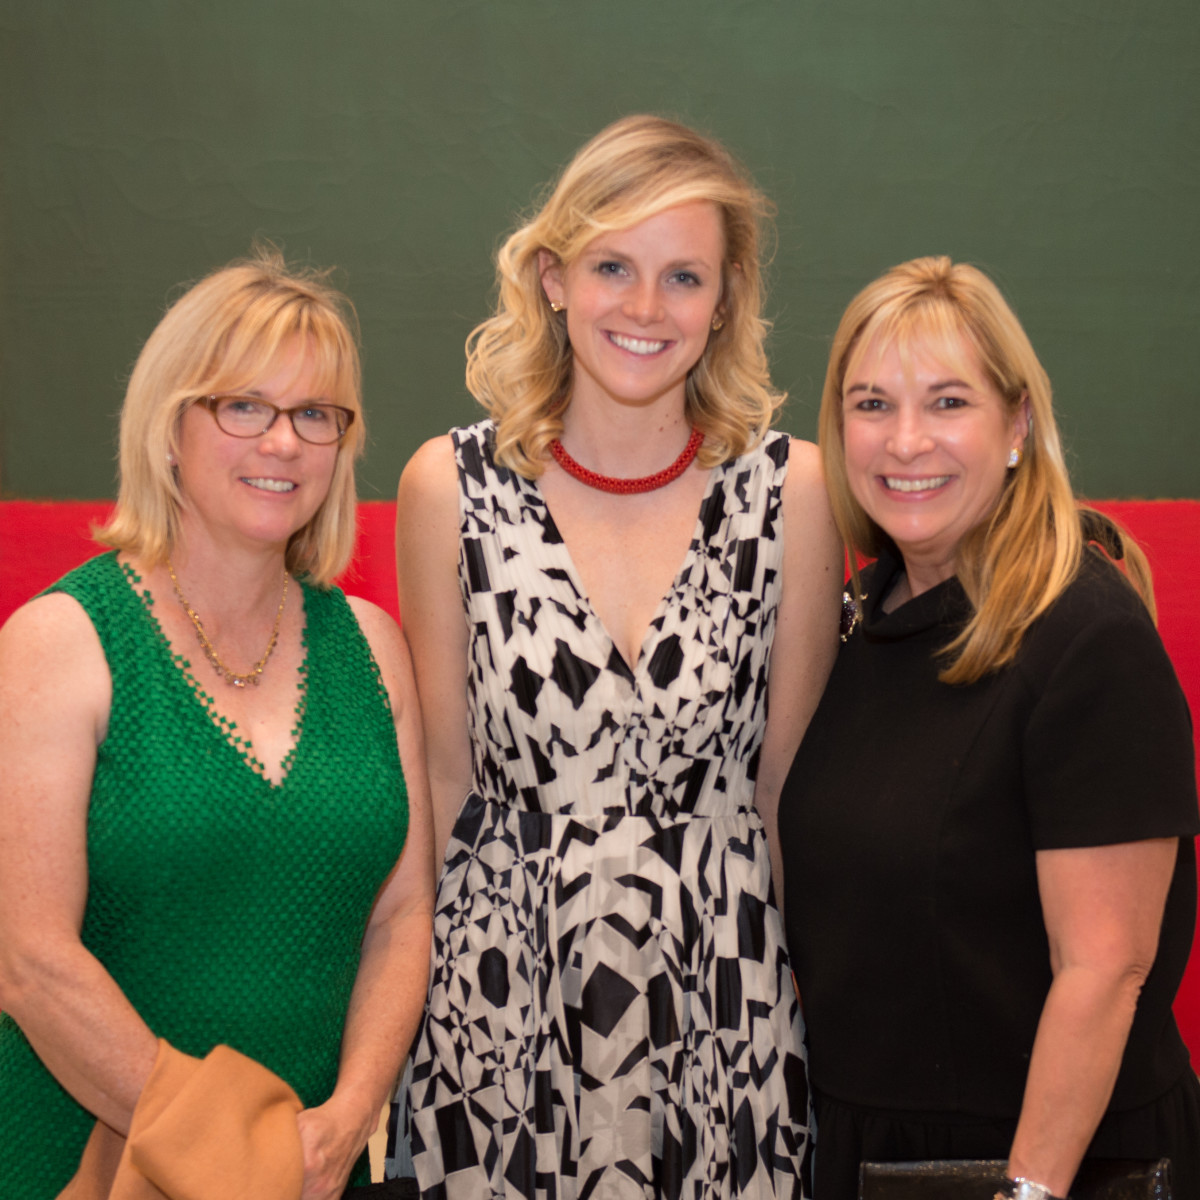 News, Shelby, MFAH Rothko opening, Sept. 2015 Sarah O' onnor; Becca Duncan; Nancy Abendshein; Photo by Wilson Parish.jpg